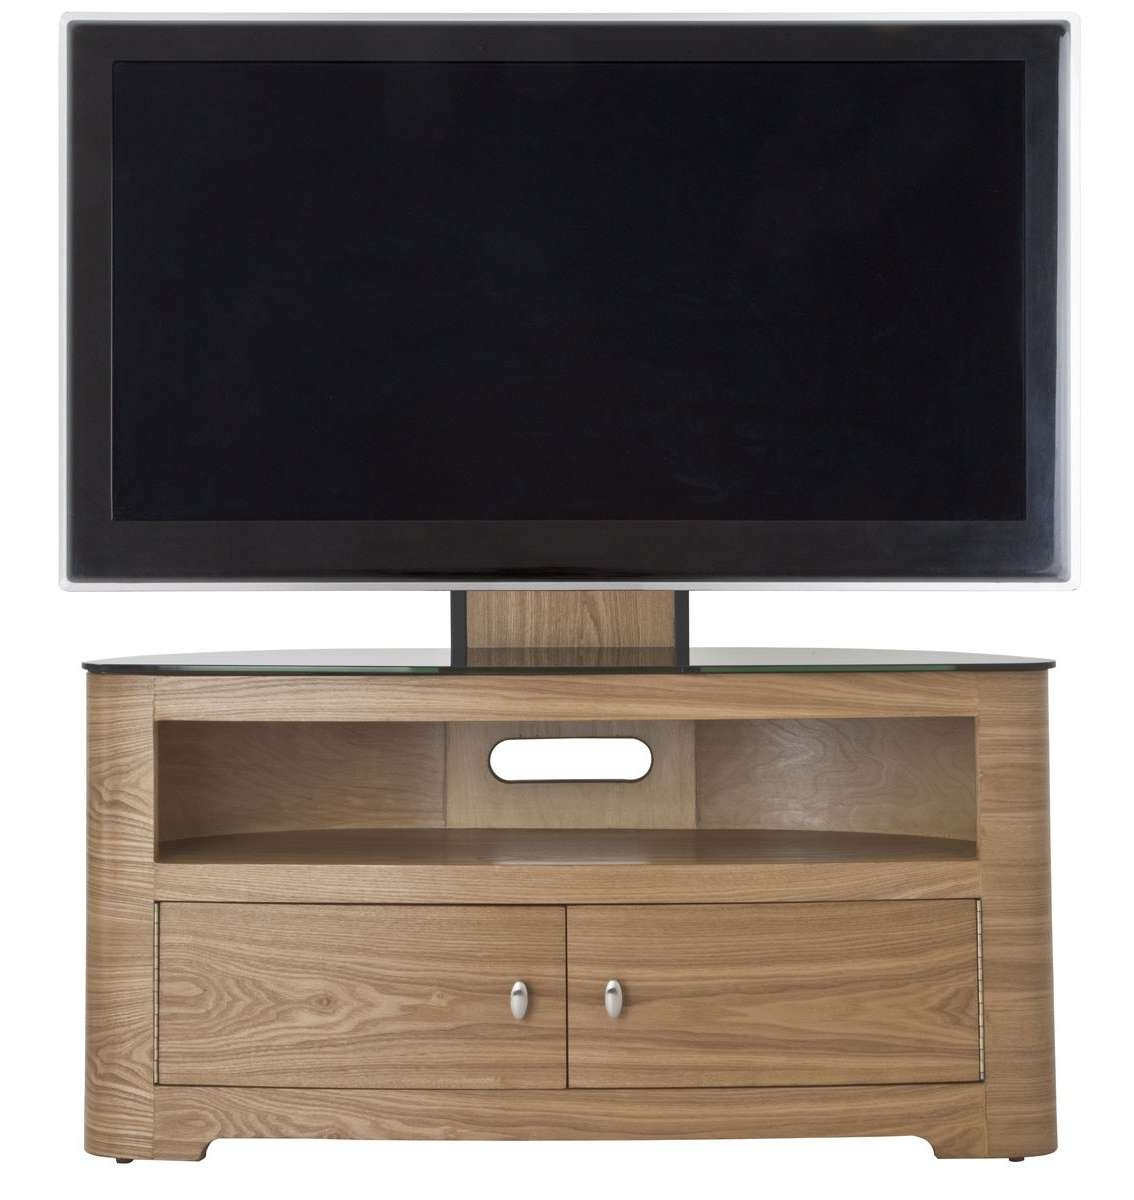 Brown Varnished Maple Wood Tv Stand With Mount Using Double Swing Intended For Maple Wood Tv Stands (View 1 of 15)